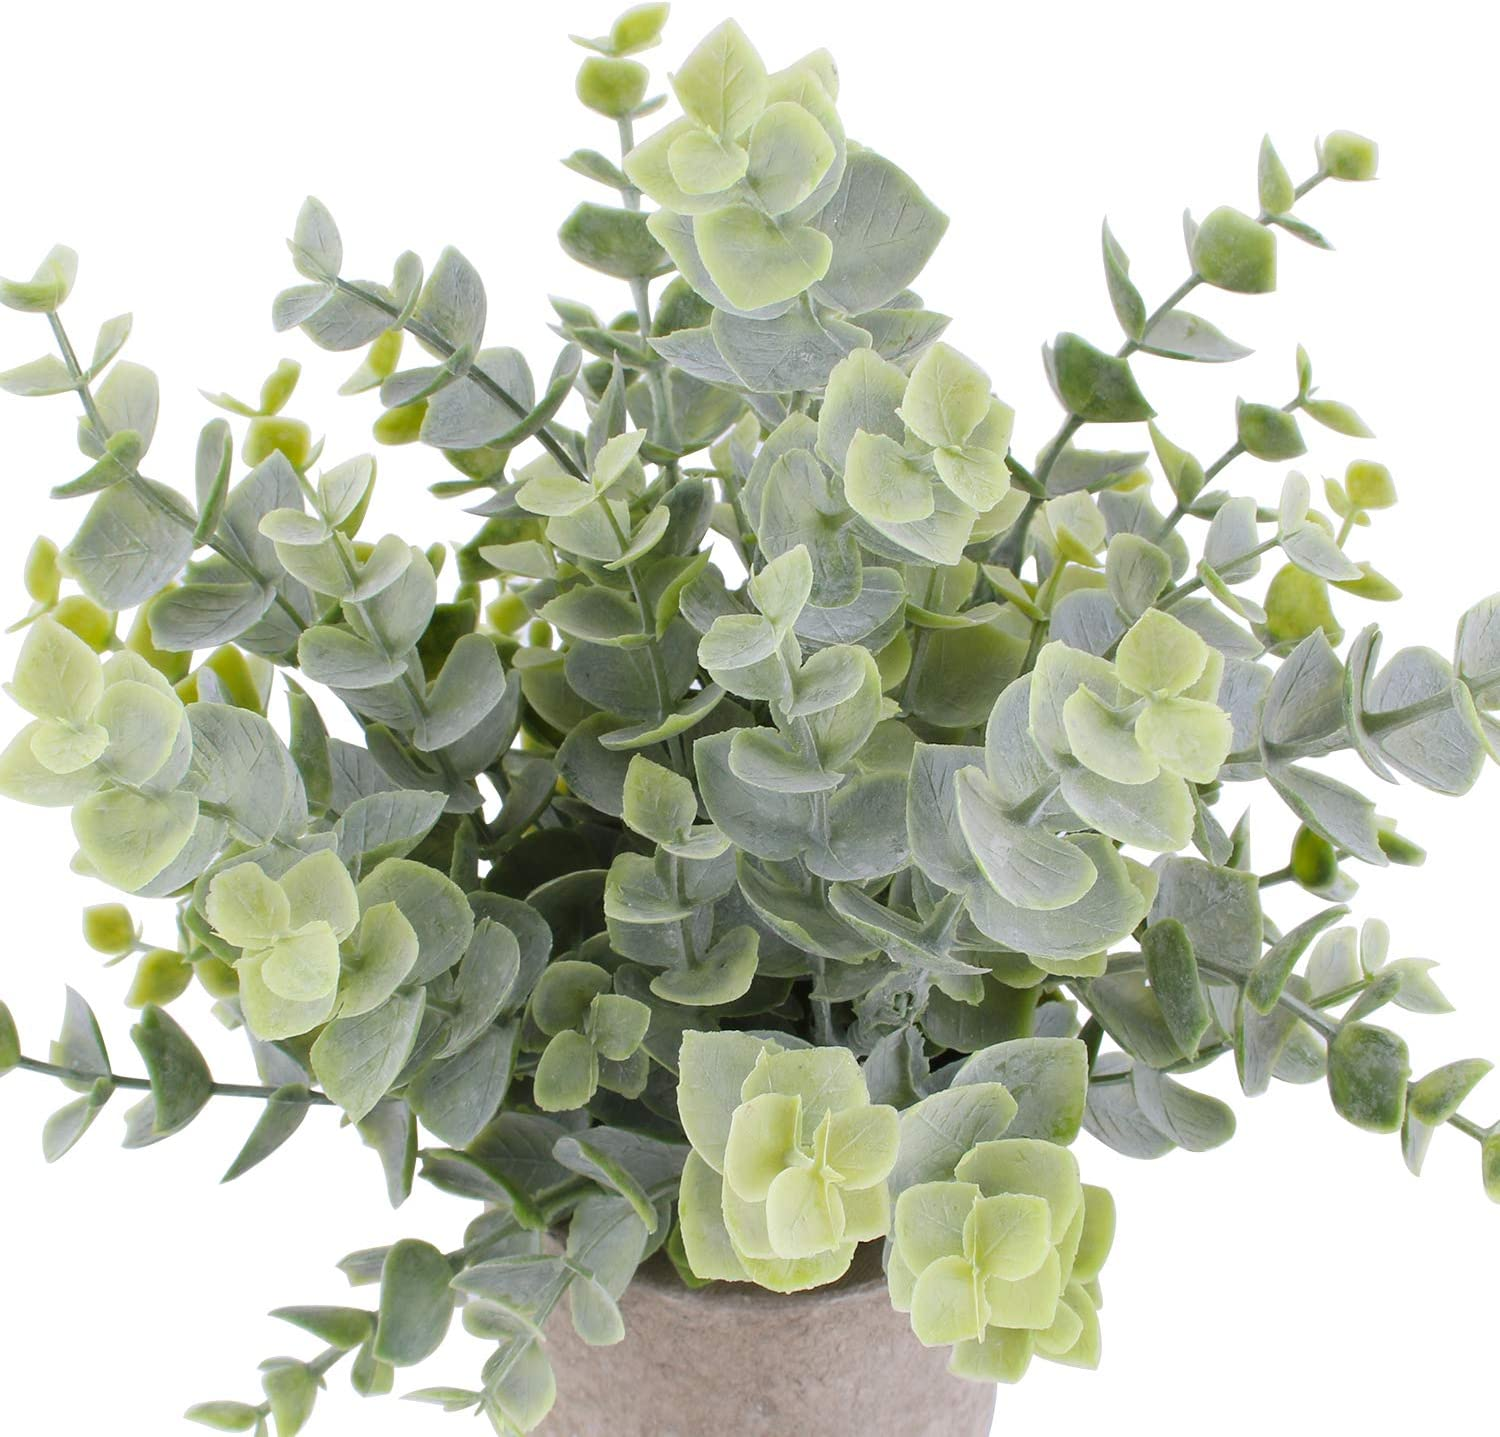 3 Pack Mini Artificial Potted Plants Faux Eucalyptus Plants Boxwood Rosemary Greenery In Pots Small Houseplants For Home Decor Office Desk Shower Room Decoration Artificial Plants Greenery